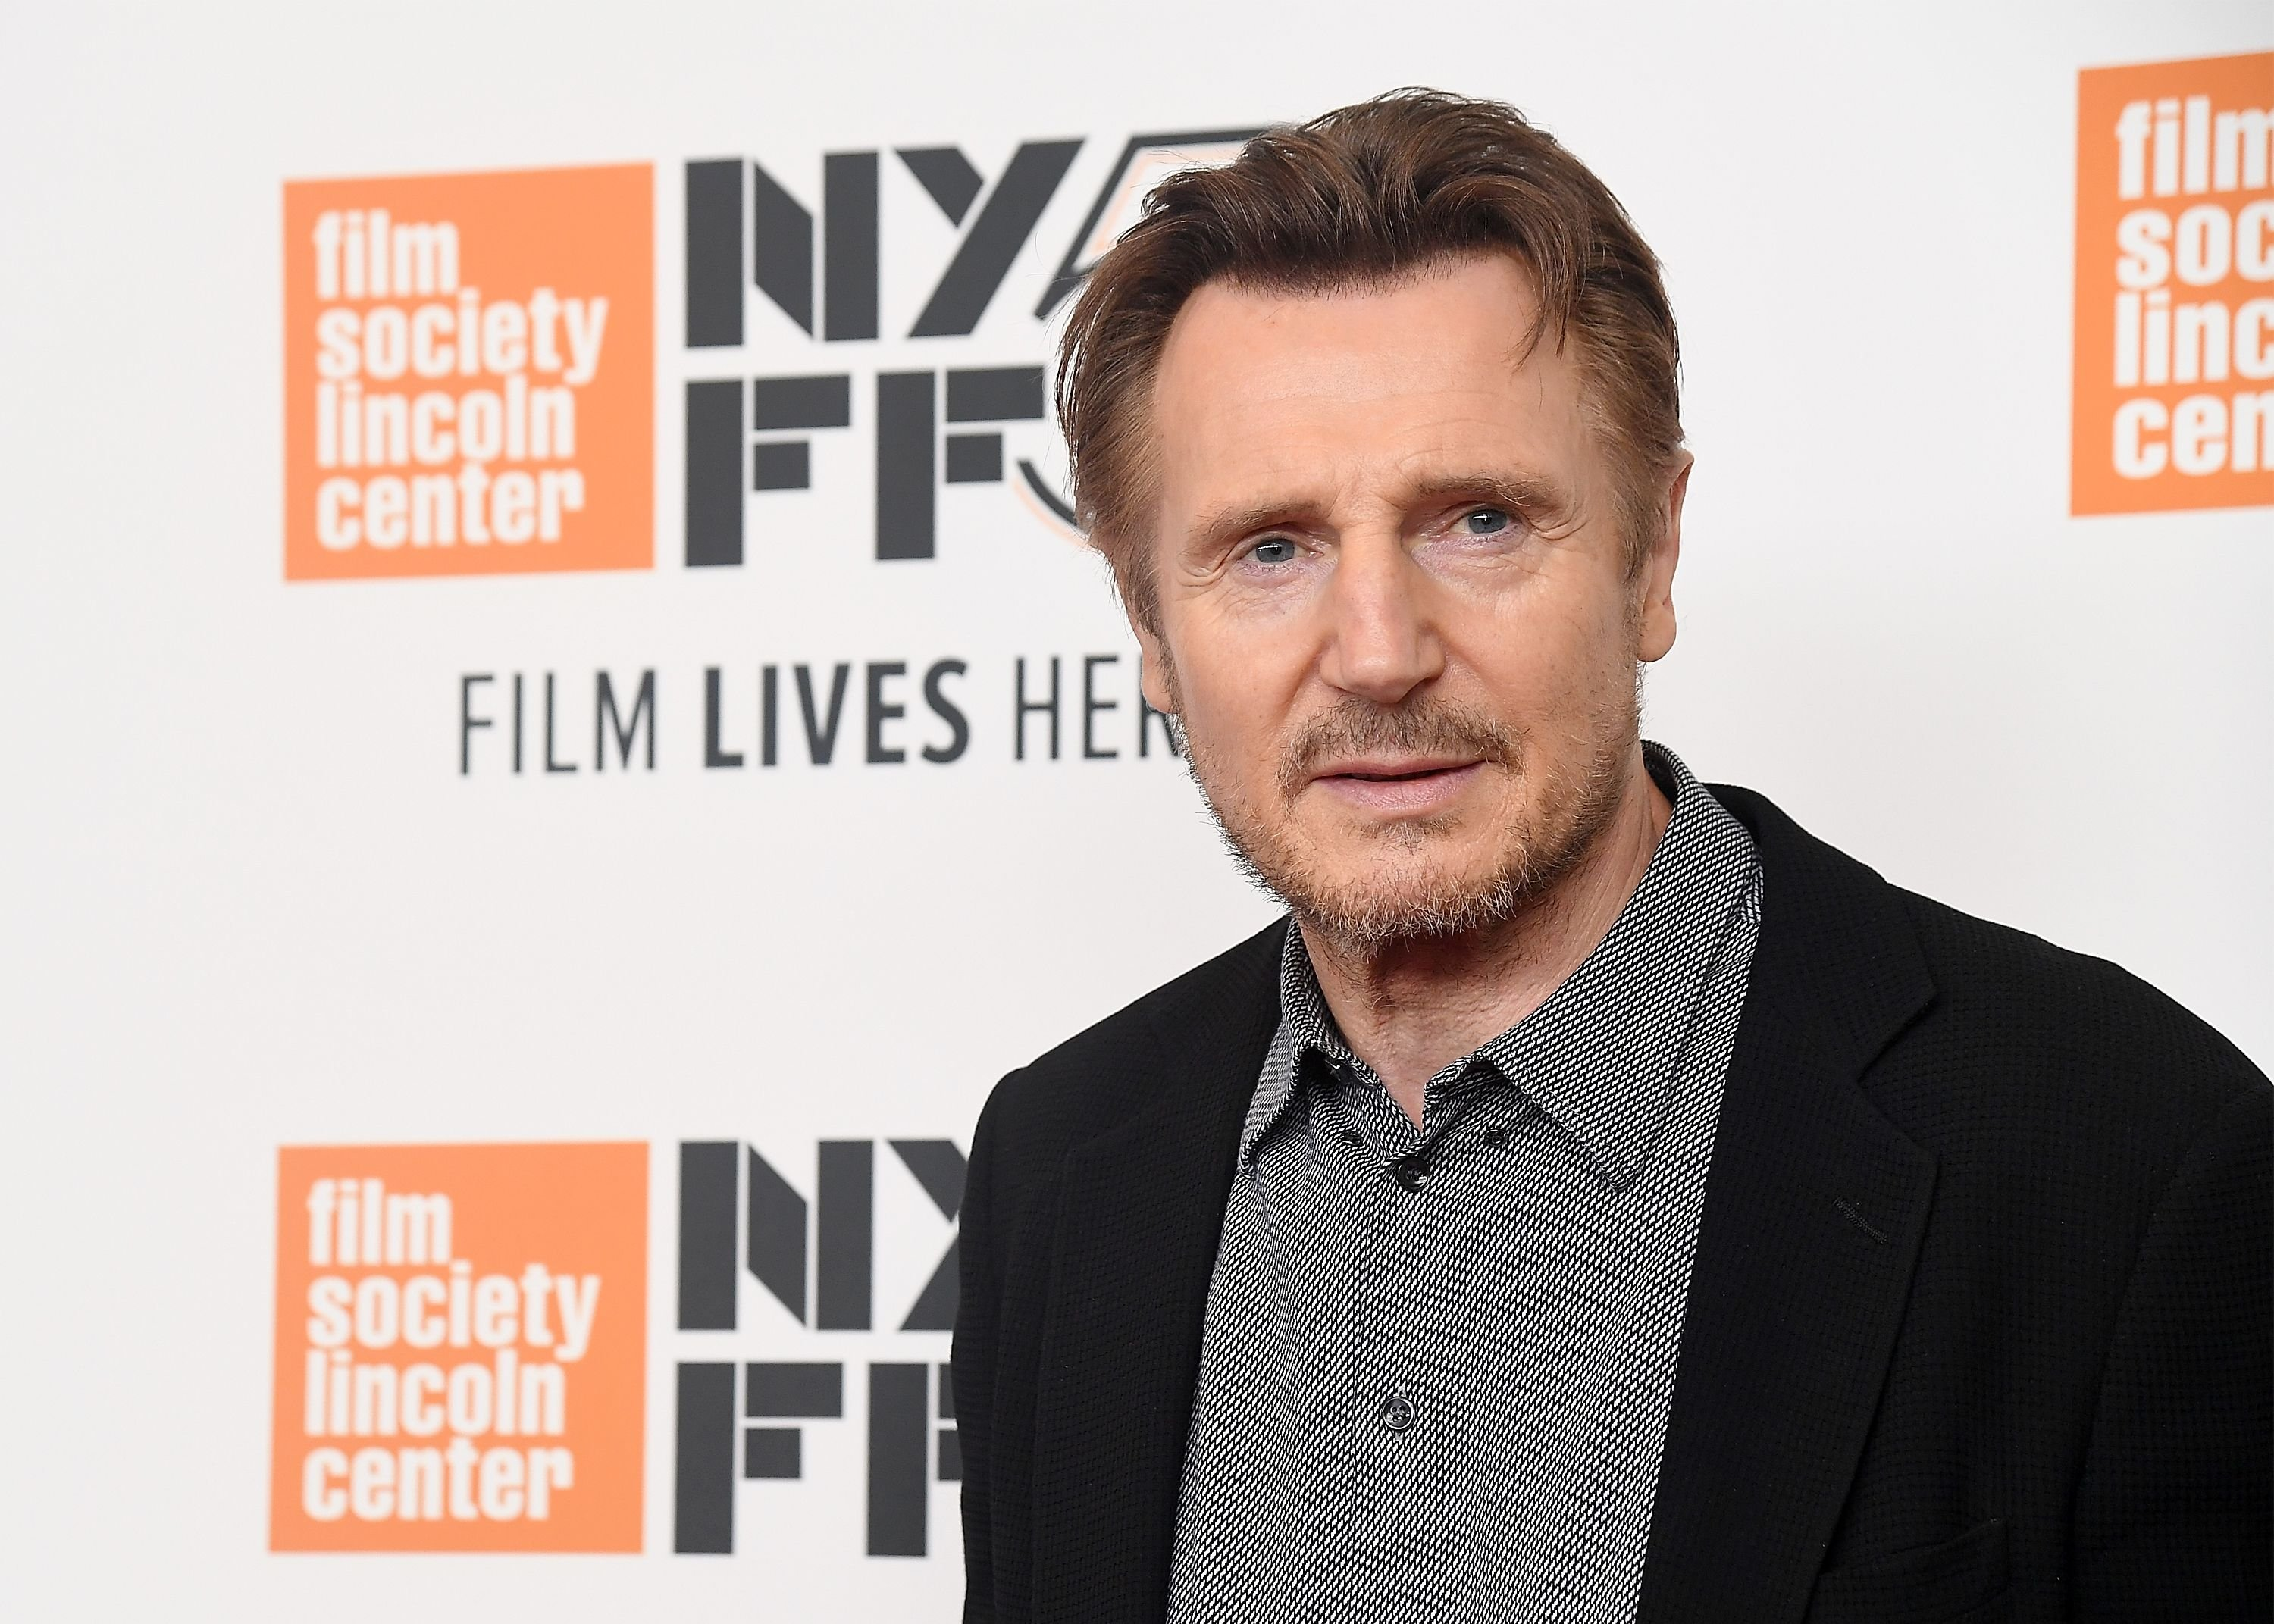 """Liam Neeson at the screening of """"The Ballad of Buster Scruggs"""" during the 56th New York Film Festival on October 4, 2018 